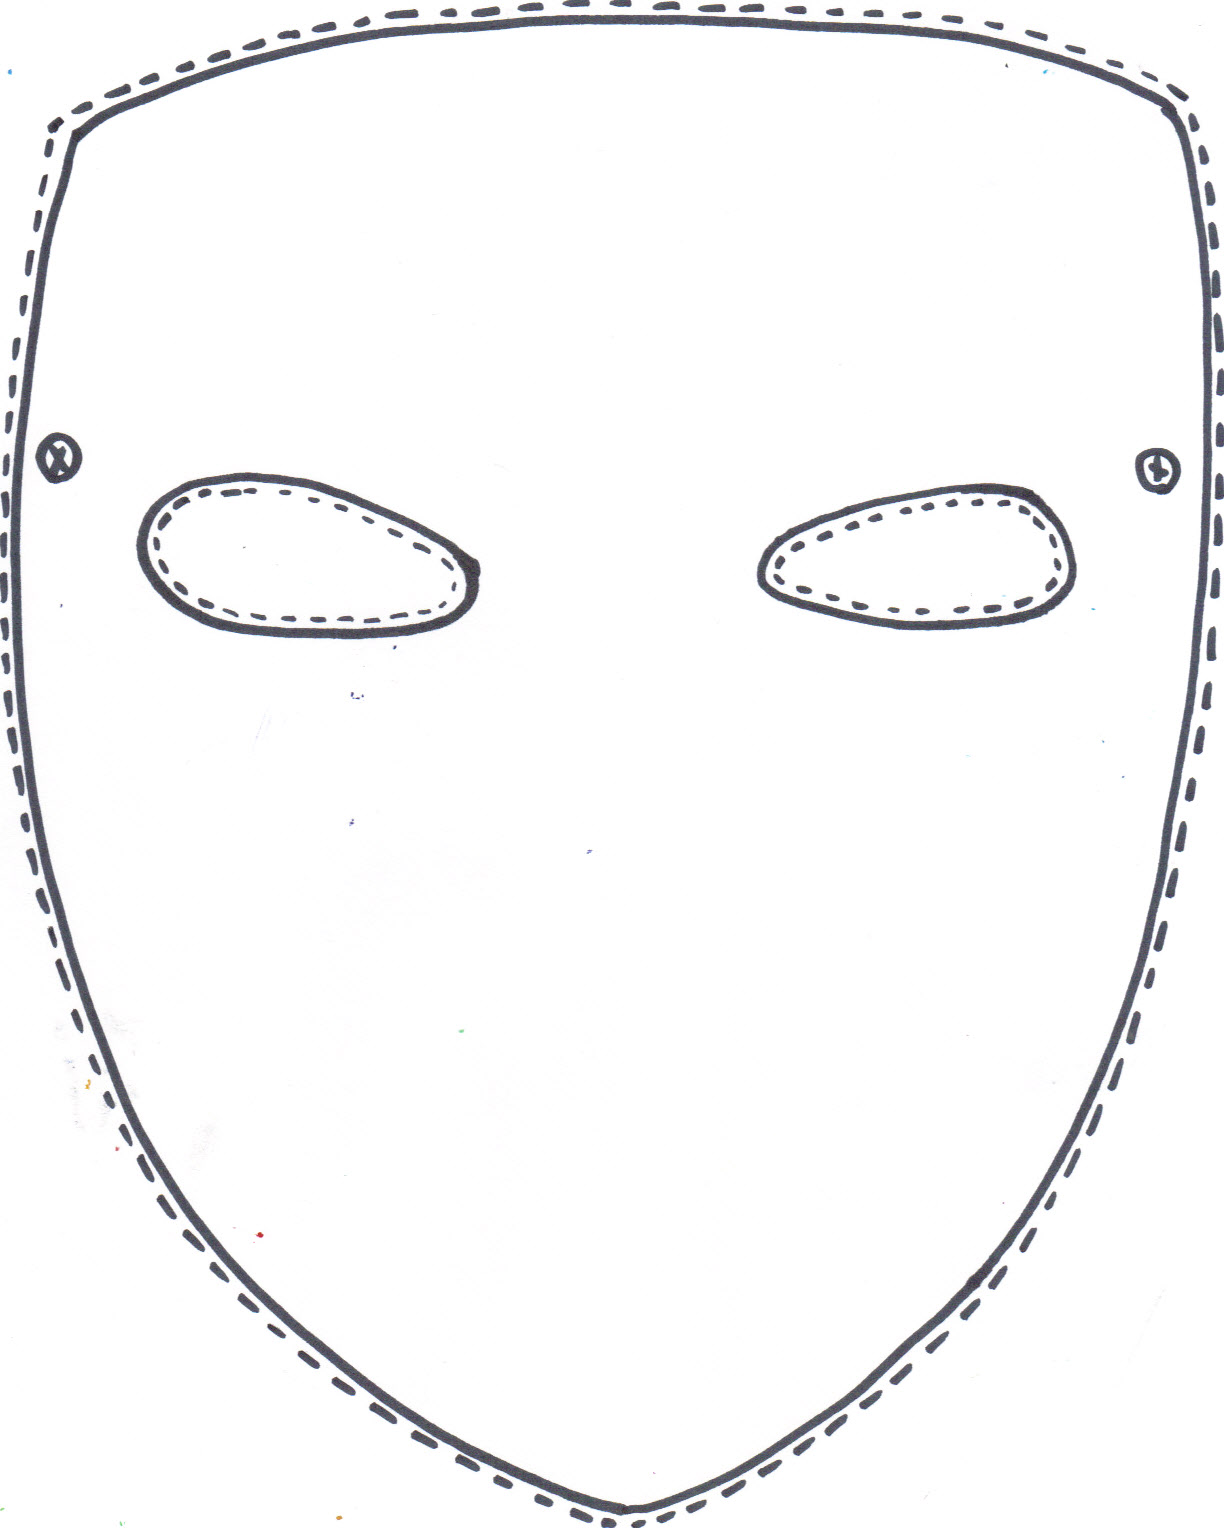 It's just a photo of Revered Mask Template Printable